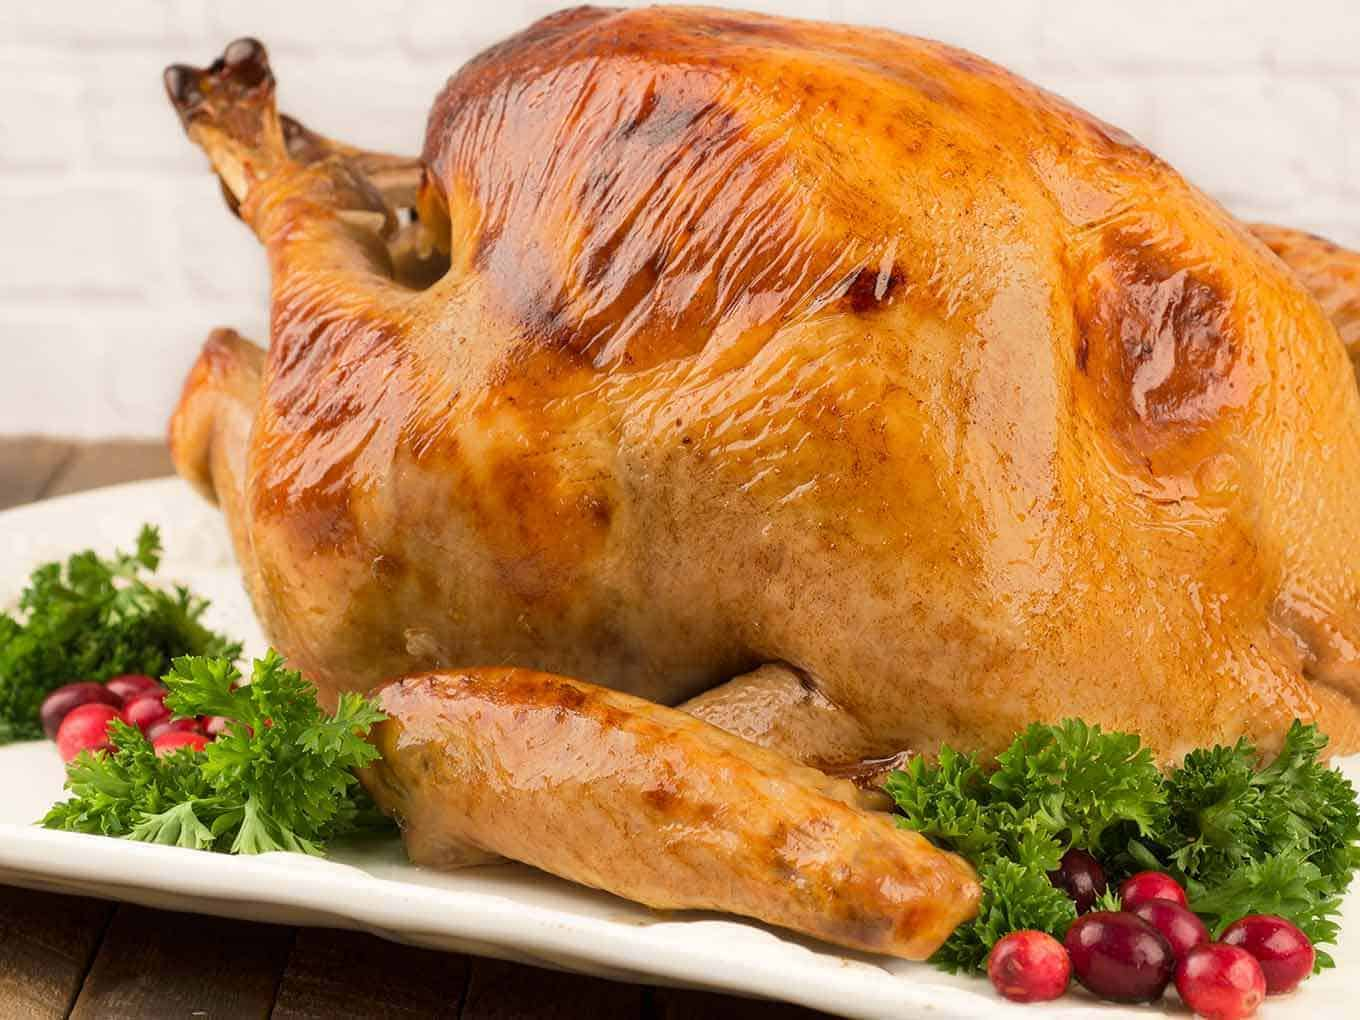 Uncarved buttermilk and honey brined turkey on a serving platter with garnish of fresh cranberries and parsley